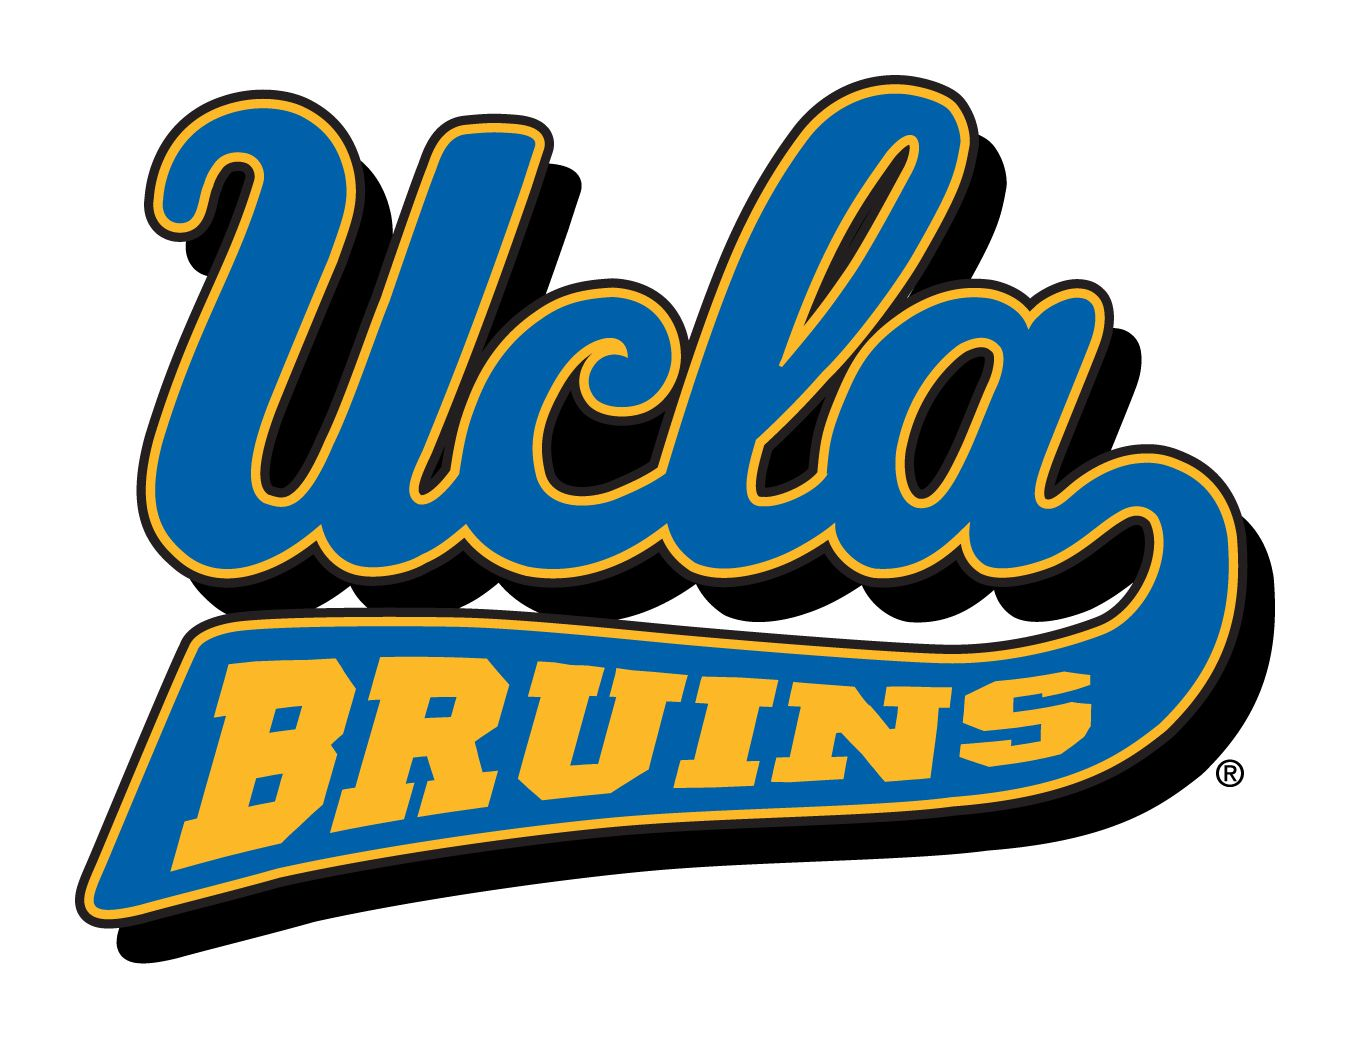 High Definition Ucla Bruins Wallpaper Wallpaper Details